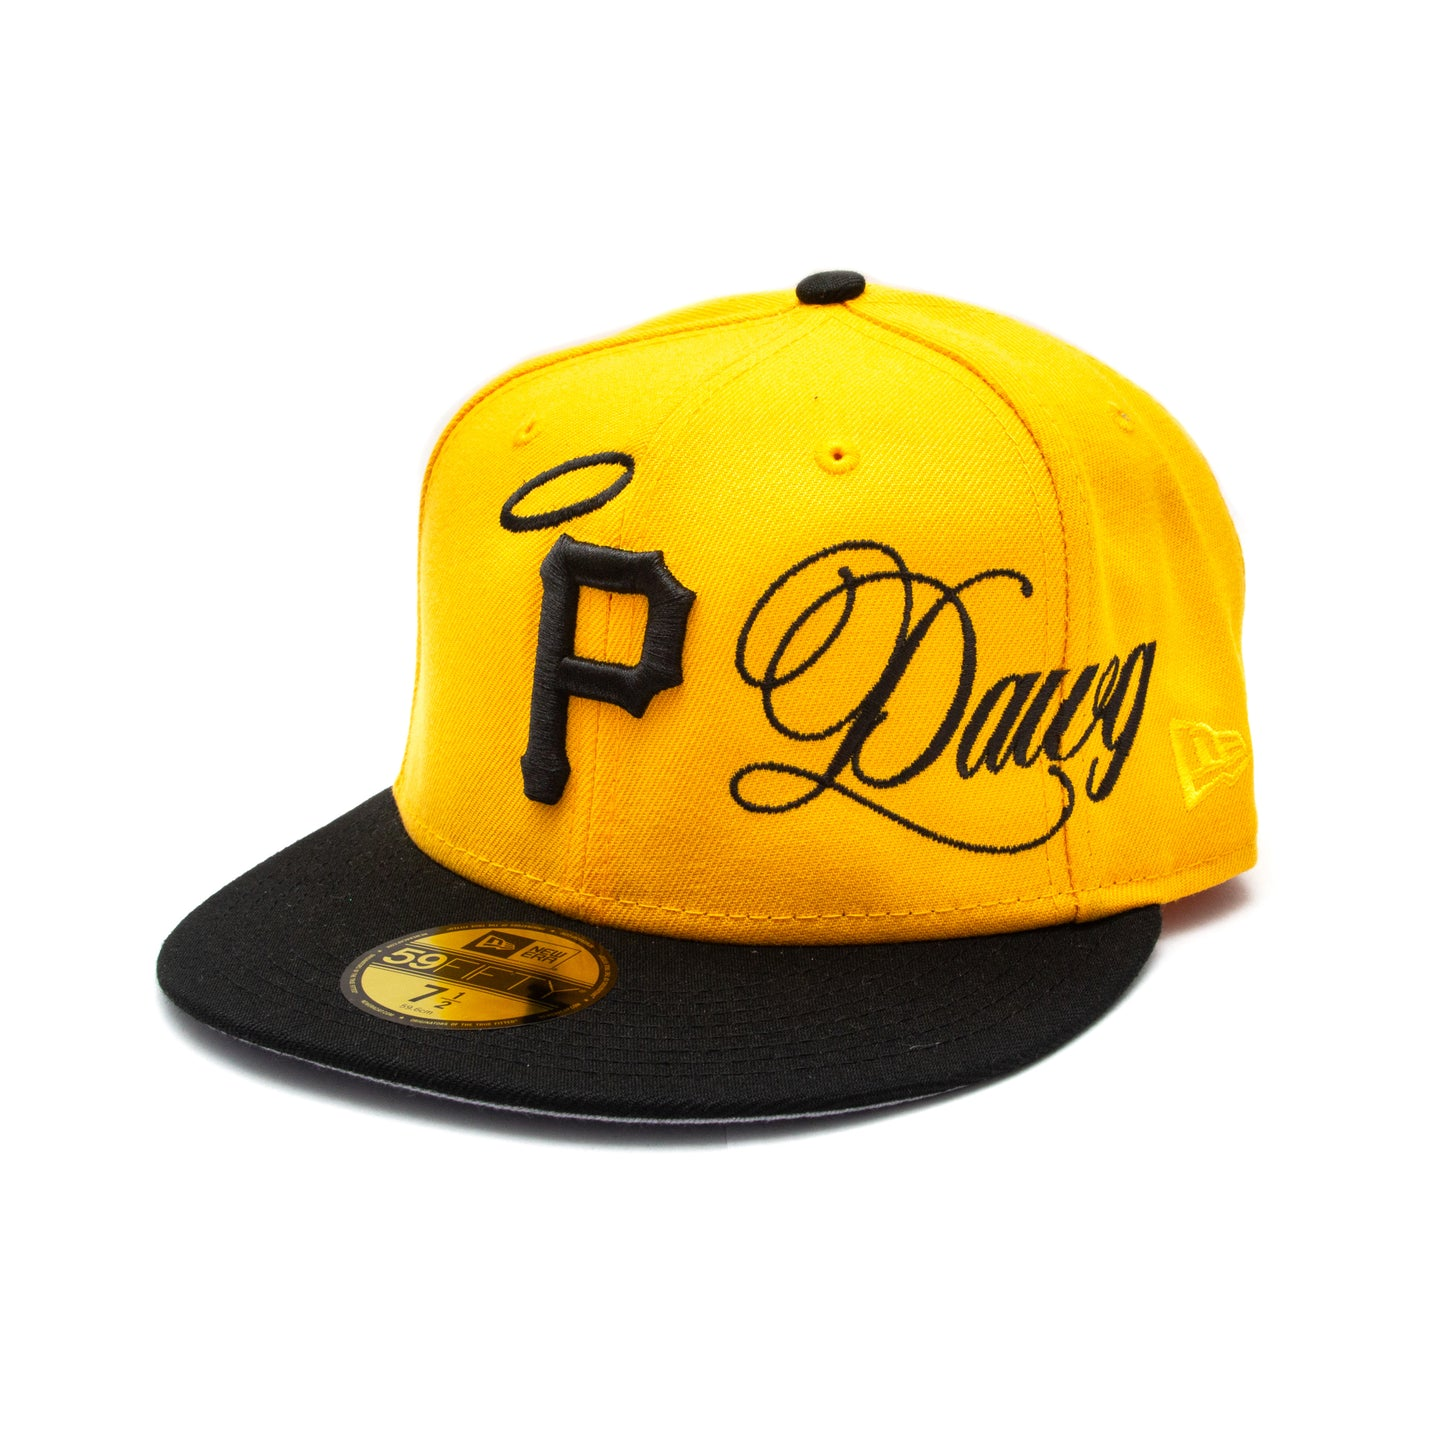 ALL DAWGS GO TO HEAVEN NEW ERA HAT: YELLOW/BLACK